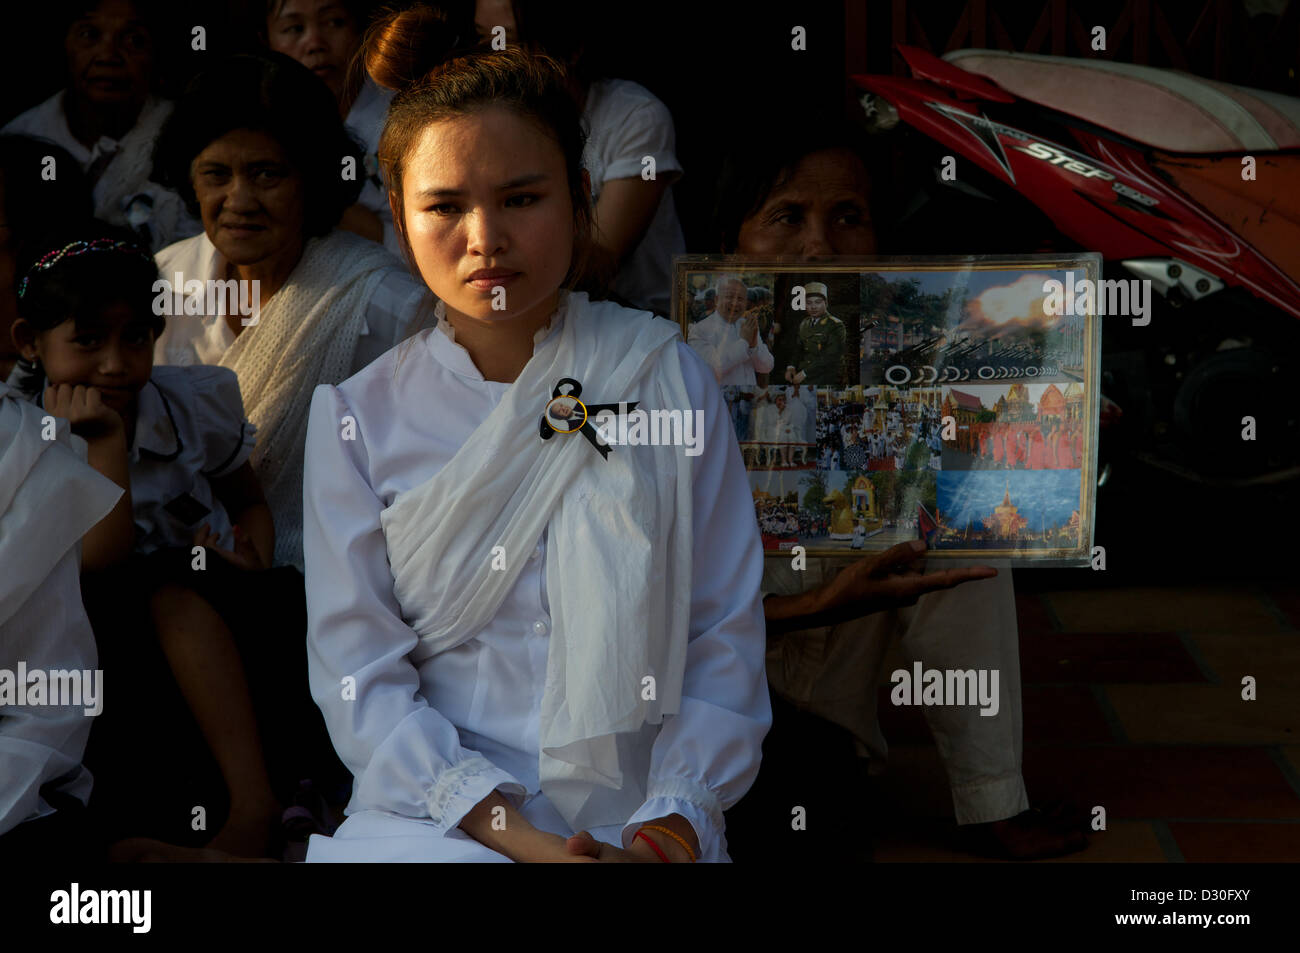 Phnom Penh, Cambodia. 4th February 2013. Portrait of a young Khmer woman mourning, Cambodians mourn the loss of Stock Photo